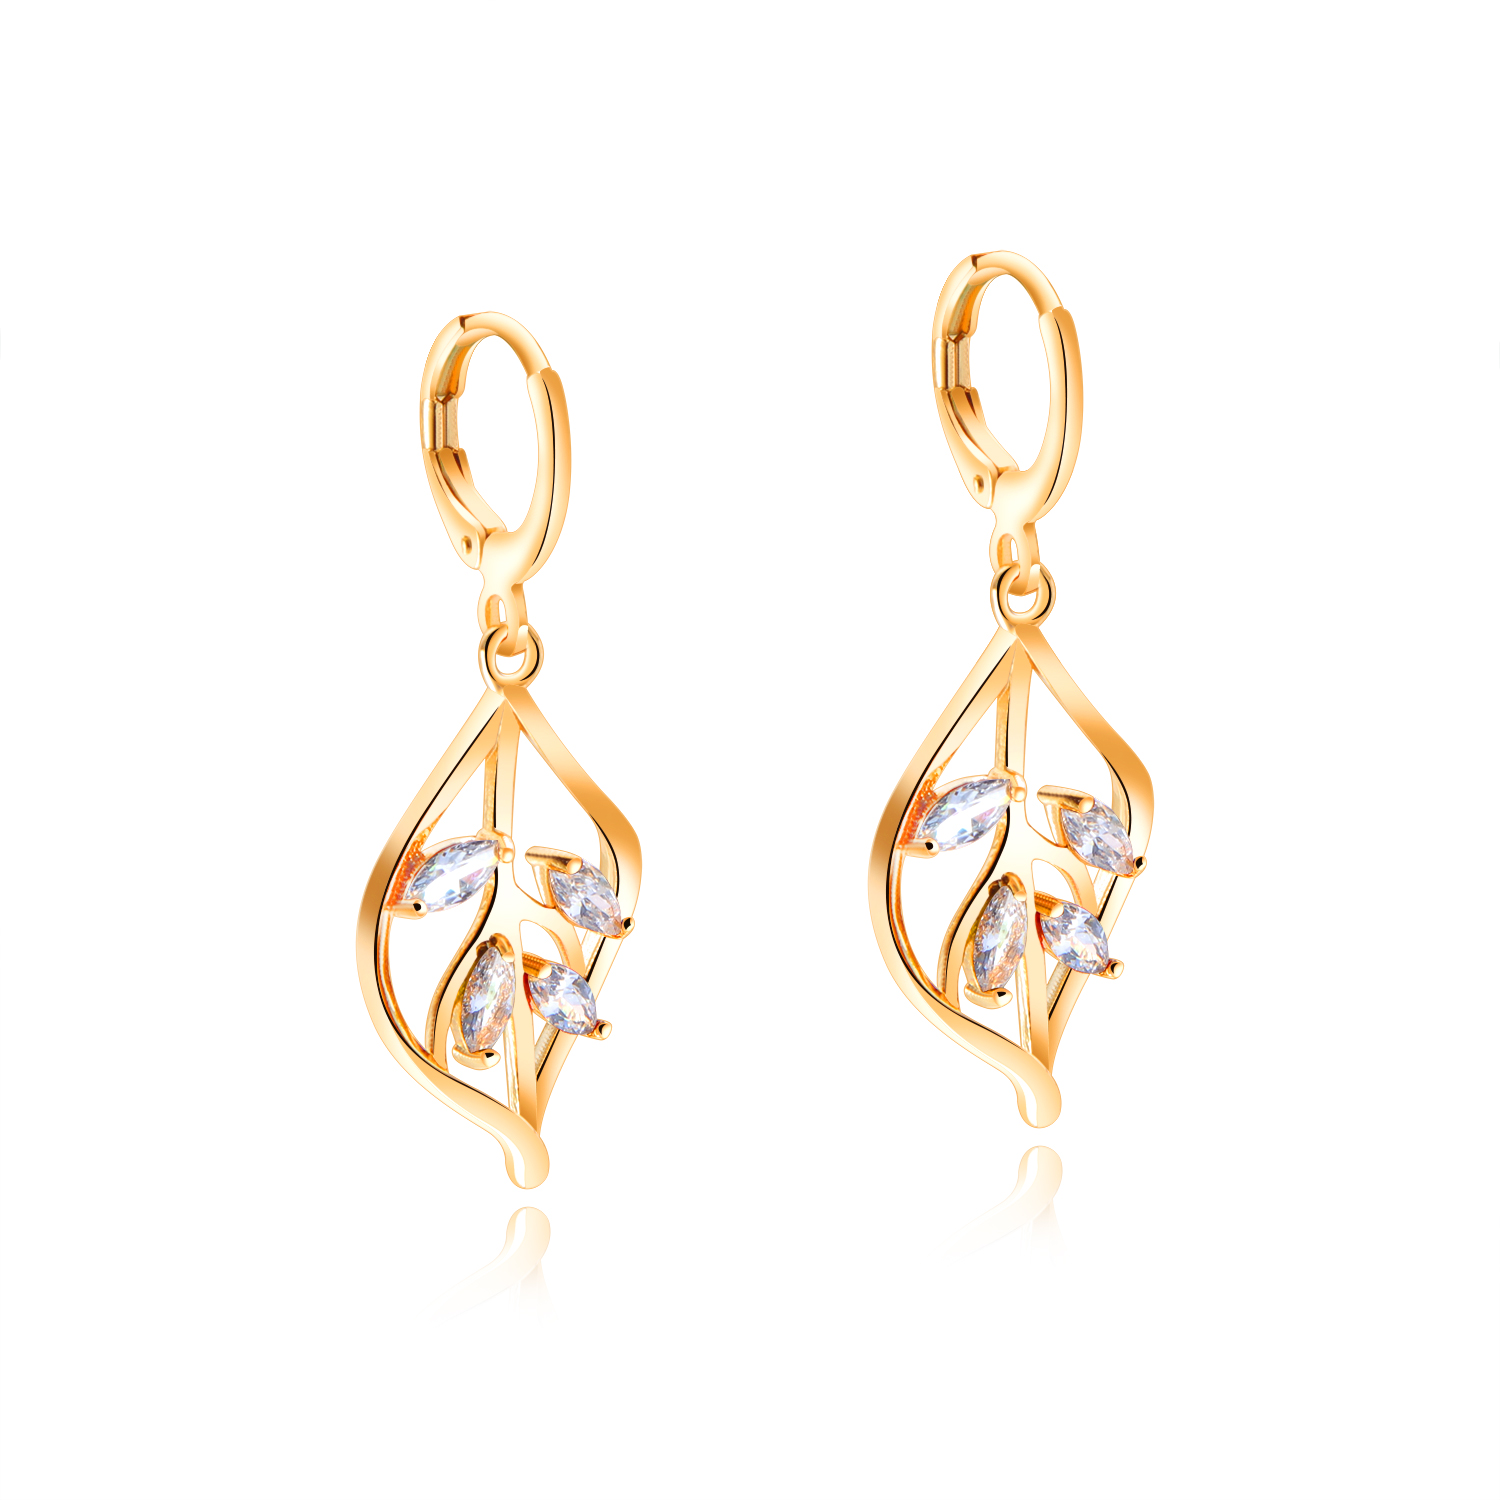 Anni Coco Women Lady Girl Dangle Earrings For Gift White Gold Plated Round Cut Cubic Zirconia CZ Link Drop Earrings